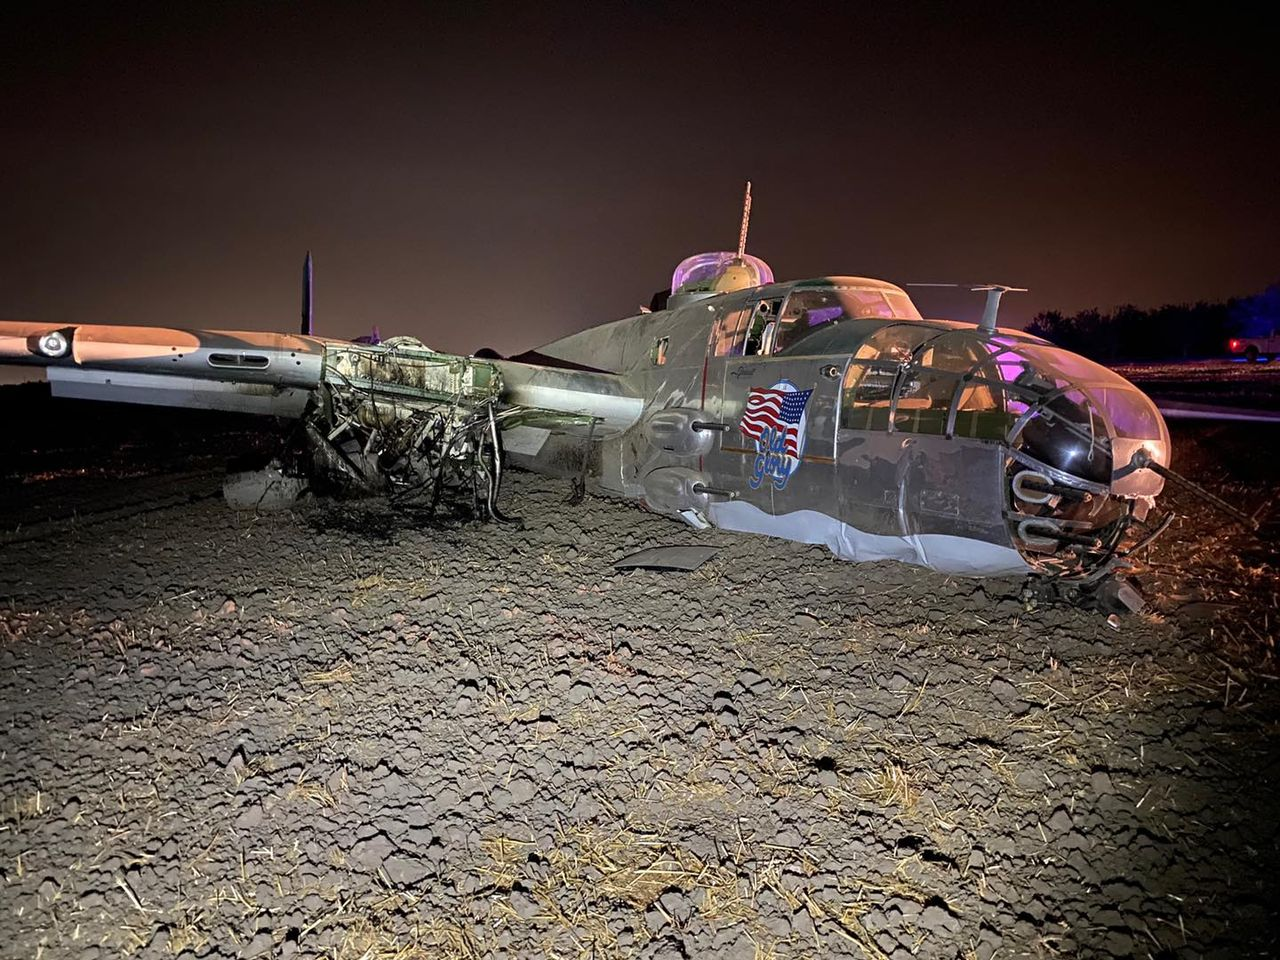 The B-25 flying as Old Glory crashed in California. Photo courtesy of San Joaquin County Sheriff's Office